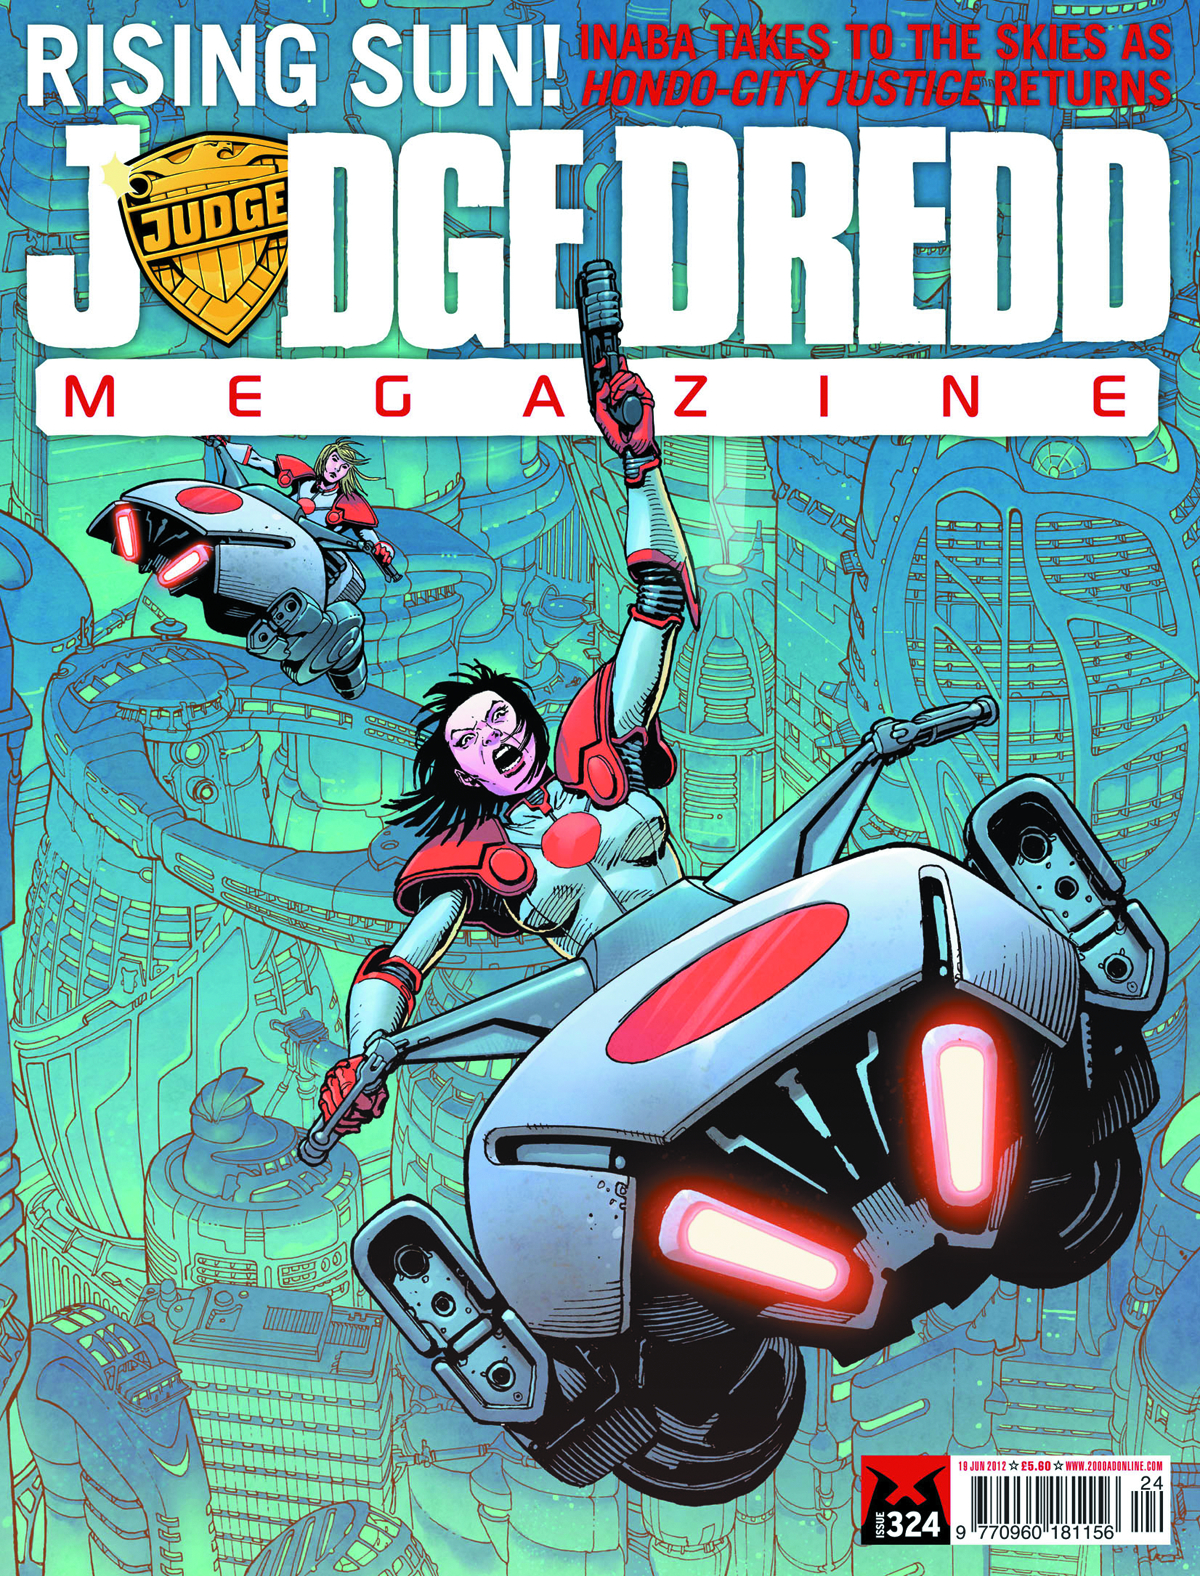 JUDGE DREDD MEGAZINE #328 MOVIE SPEC